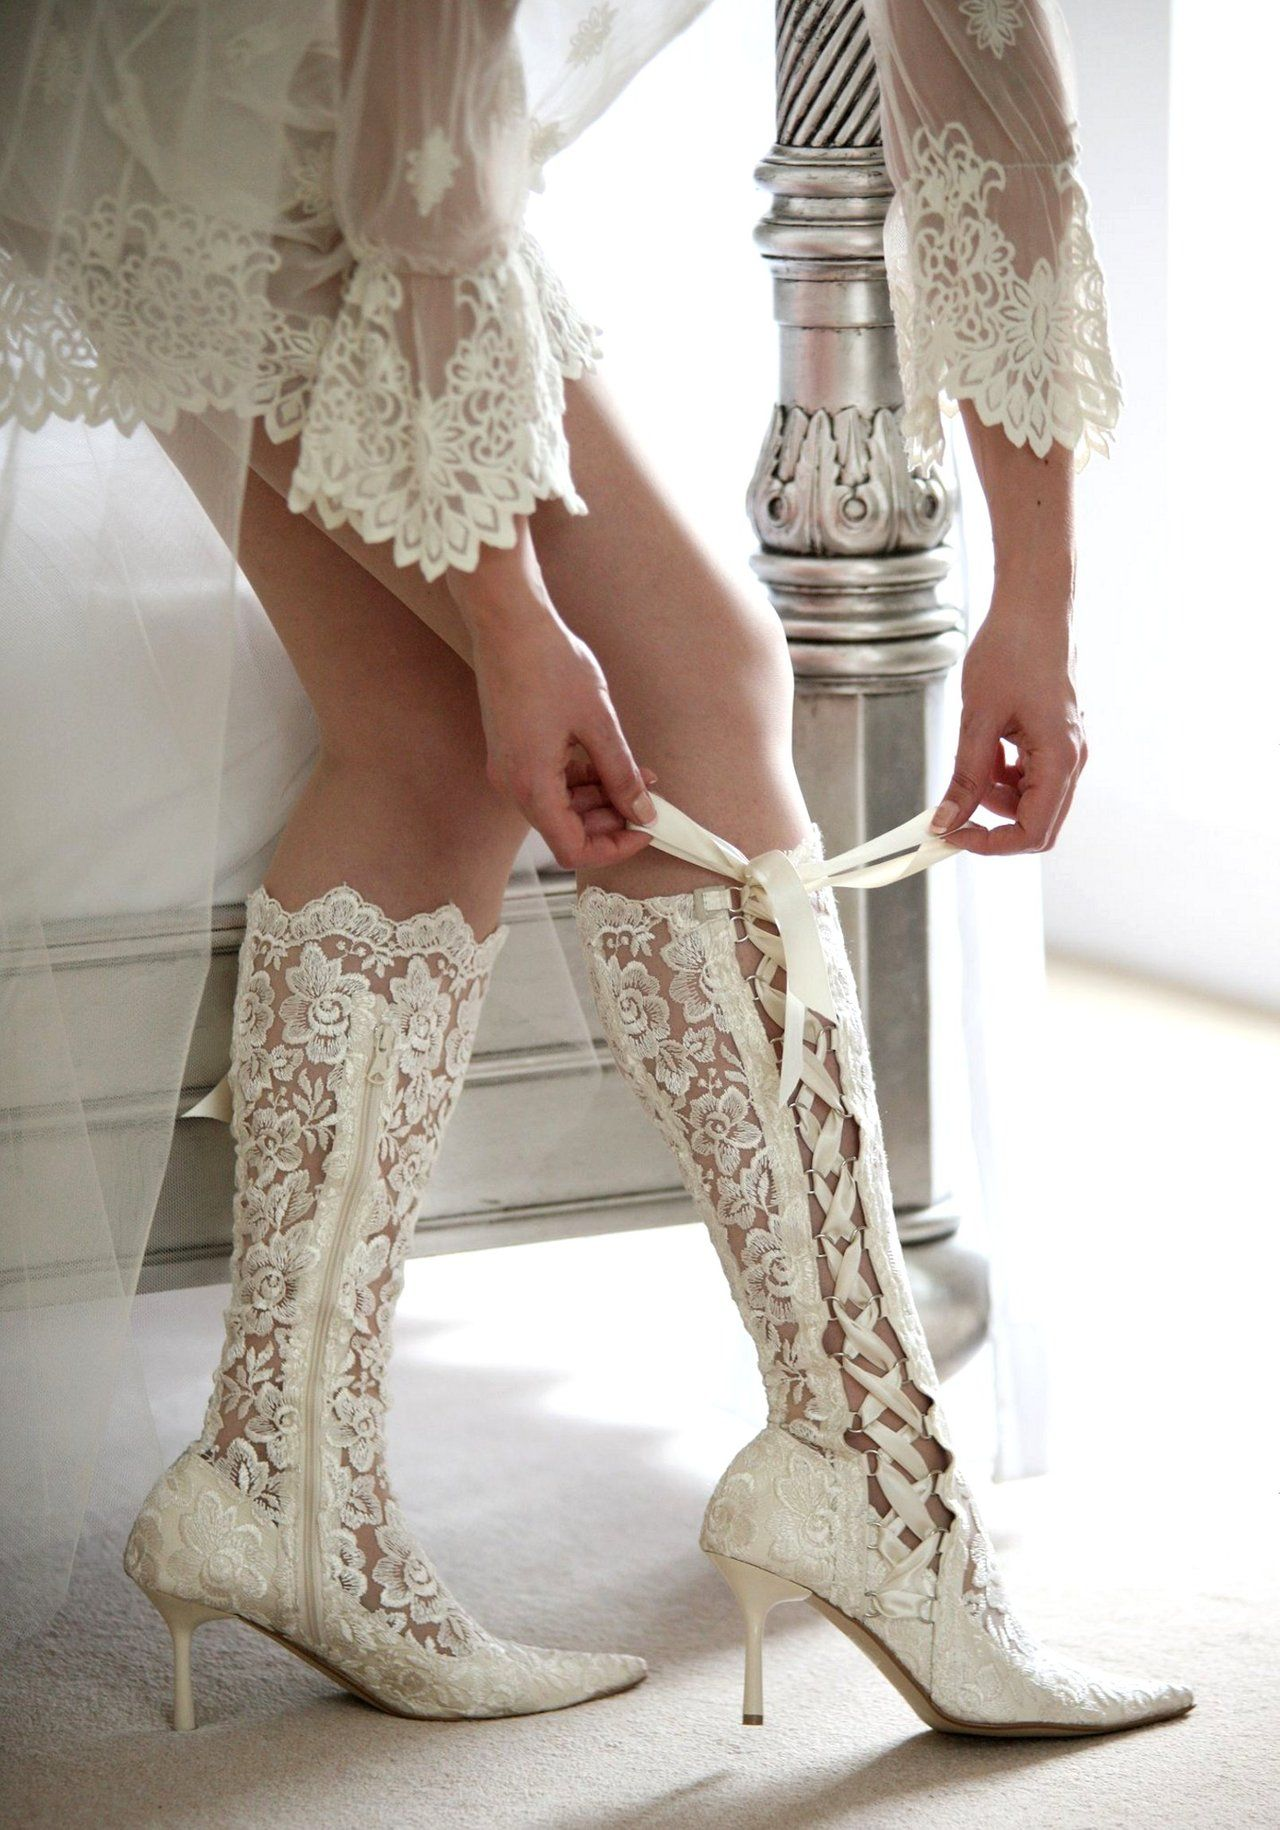 The most gorgeous lace boots!